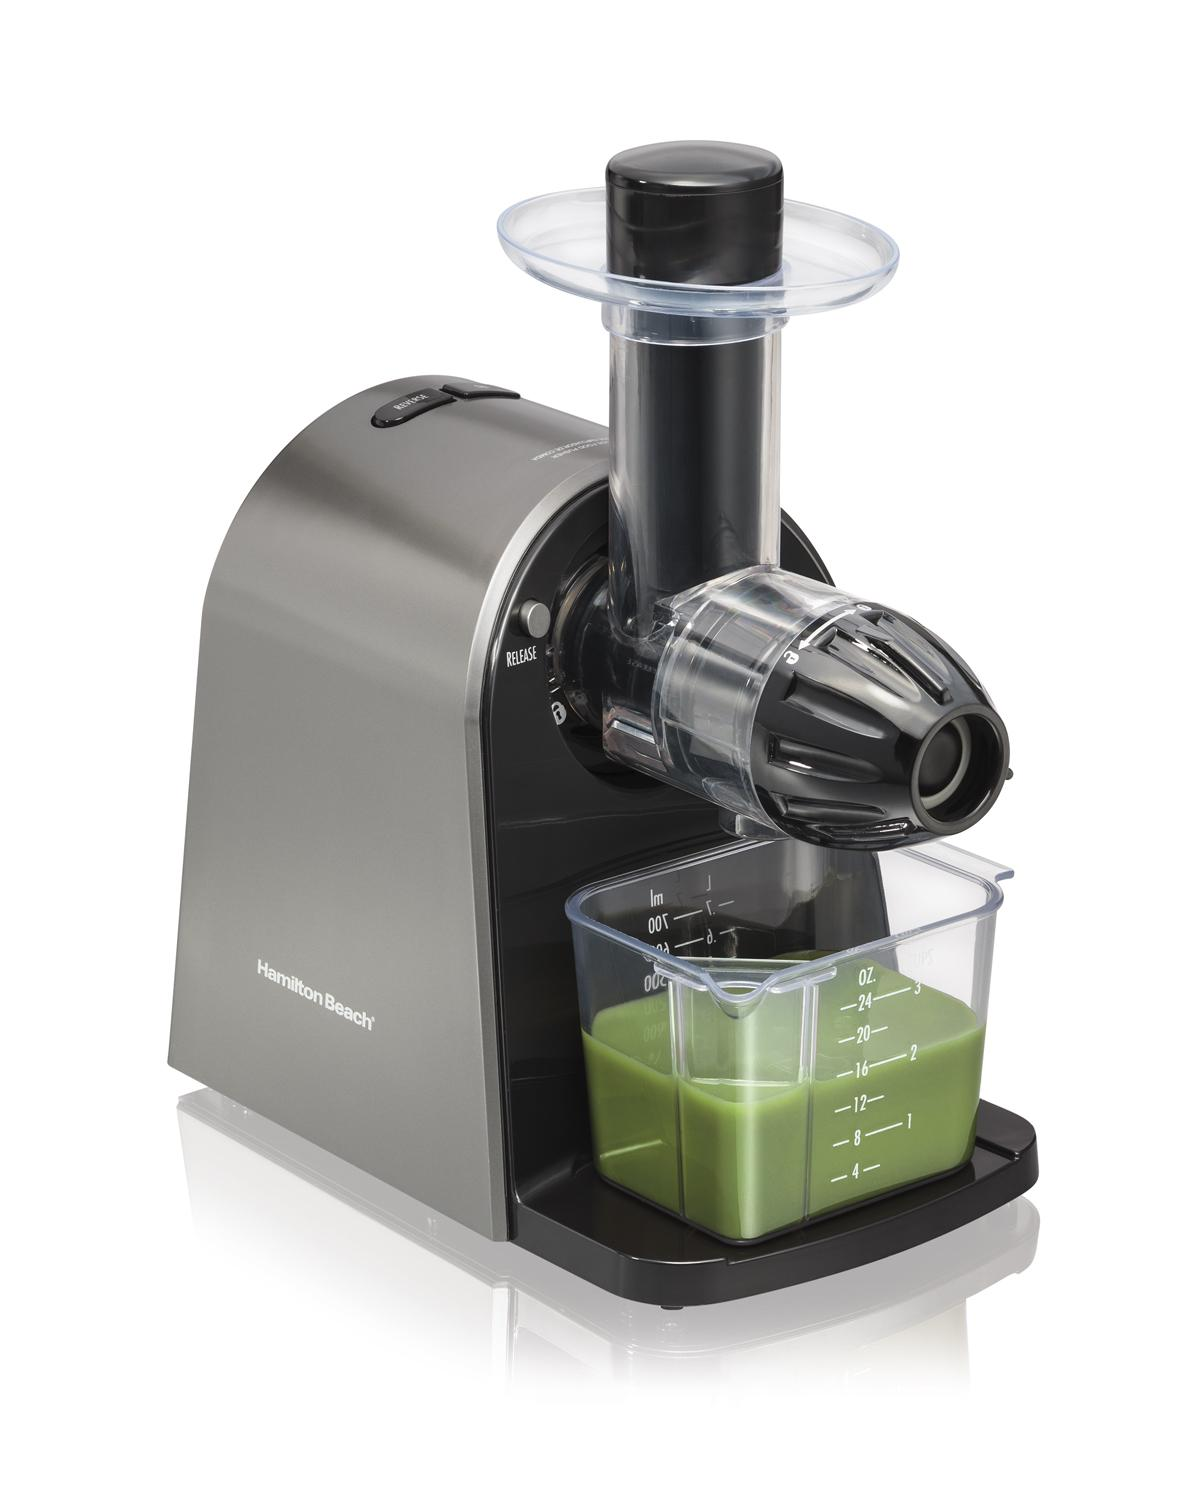 Dodawa Slow Juicer Review : juicer breville commercial cuisinart omega extractor slow juicers electric vegetable masticating